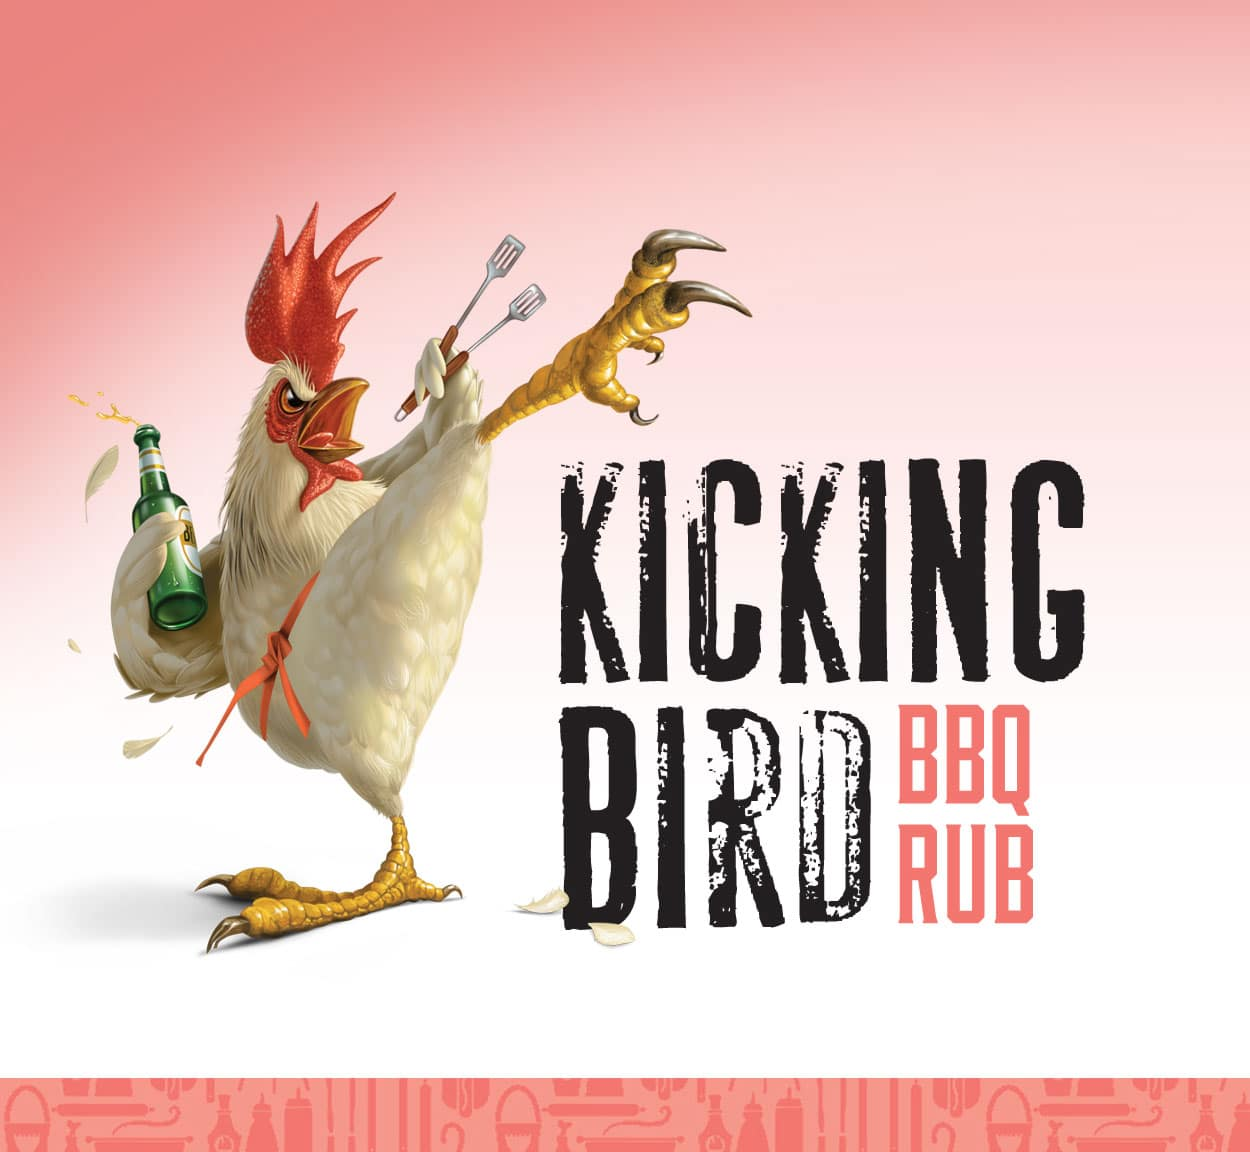 Mr. Pink Kicking Bird BBQ Rub Branding